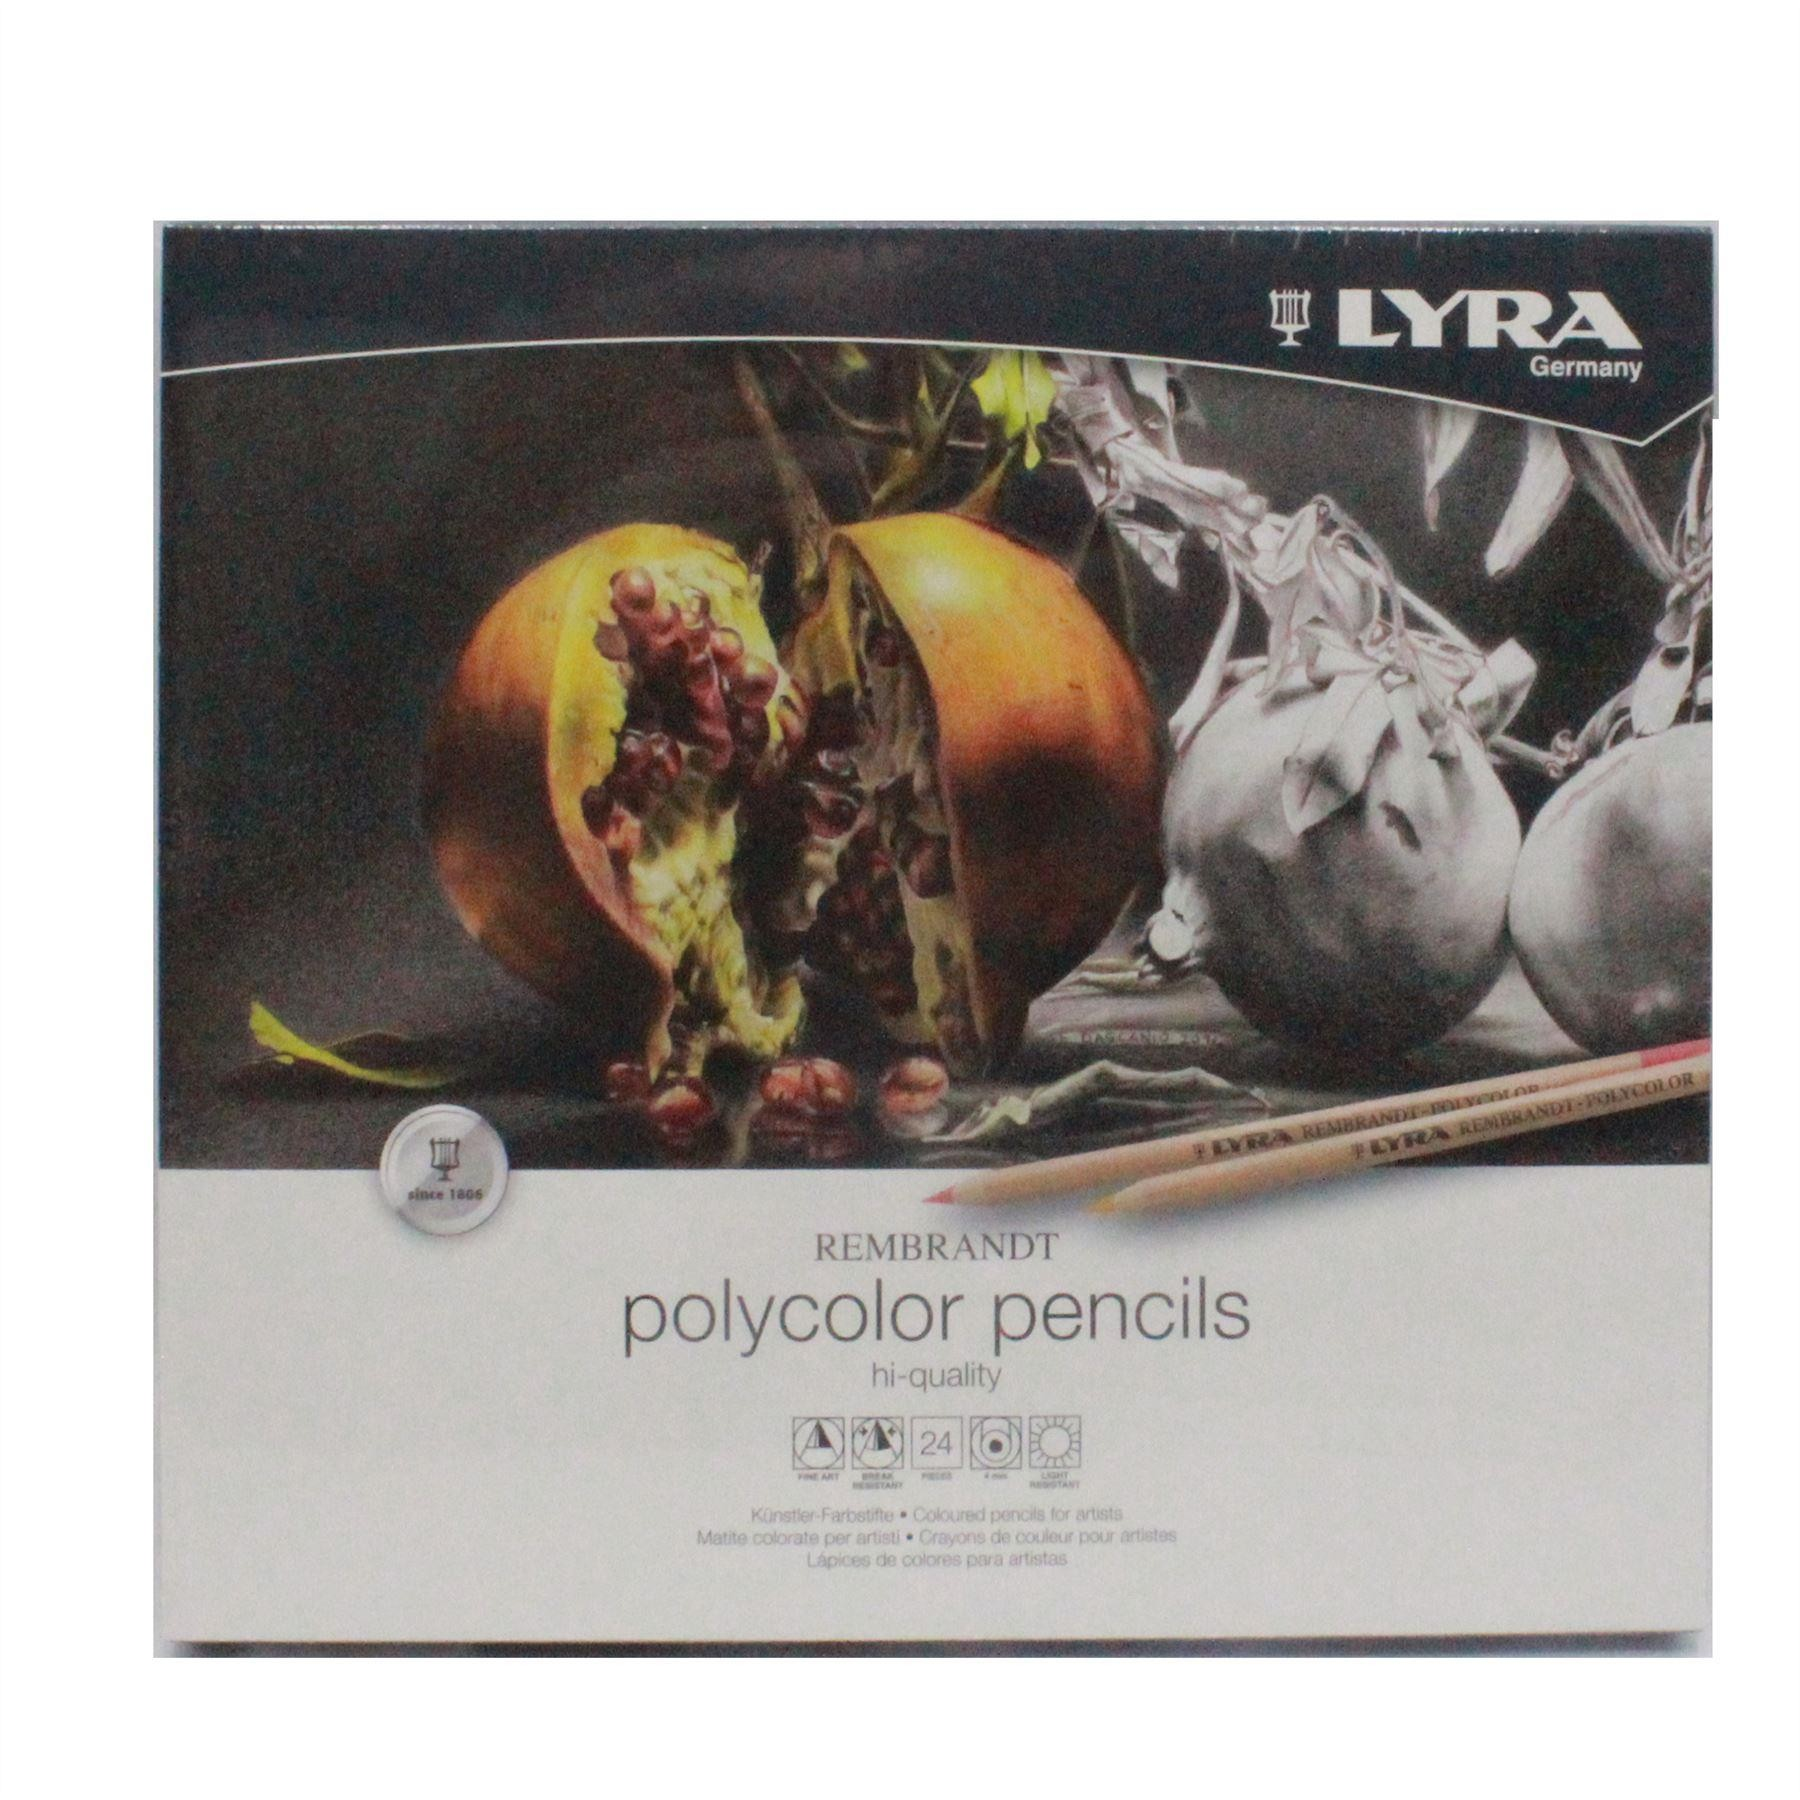 Artists colour pencils polycolor pencils lyra rembrandt